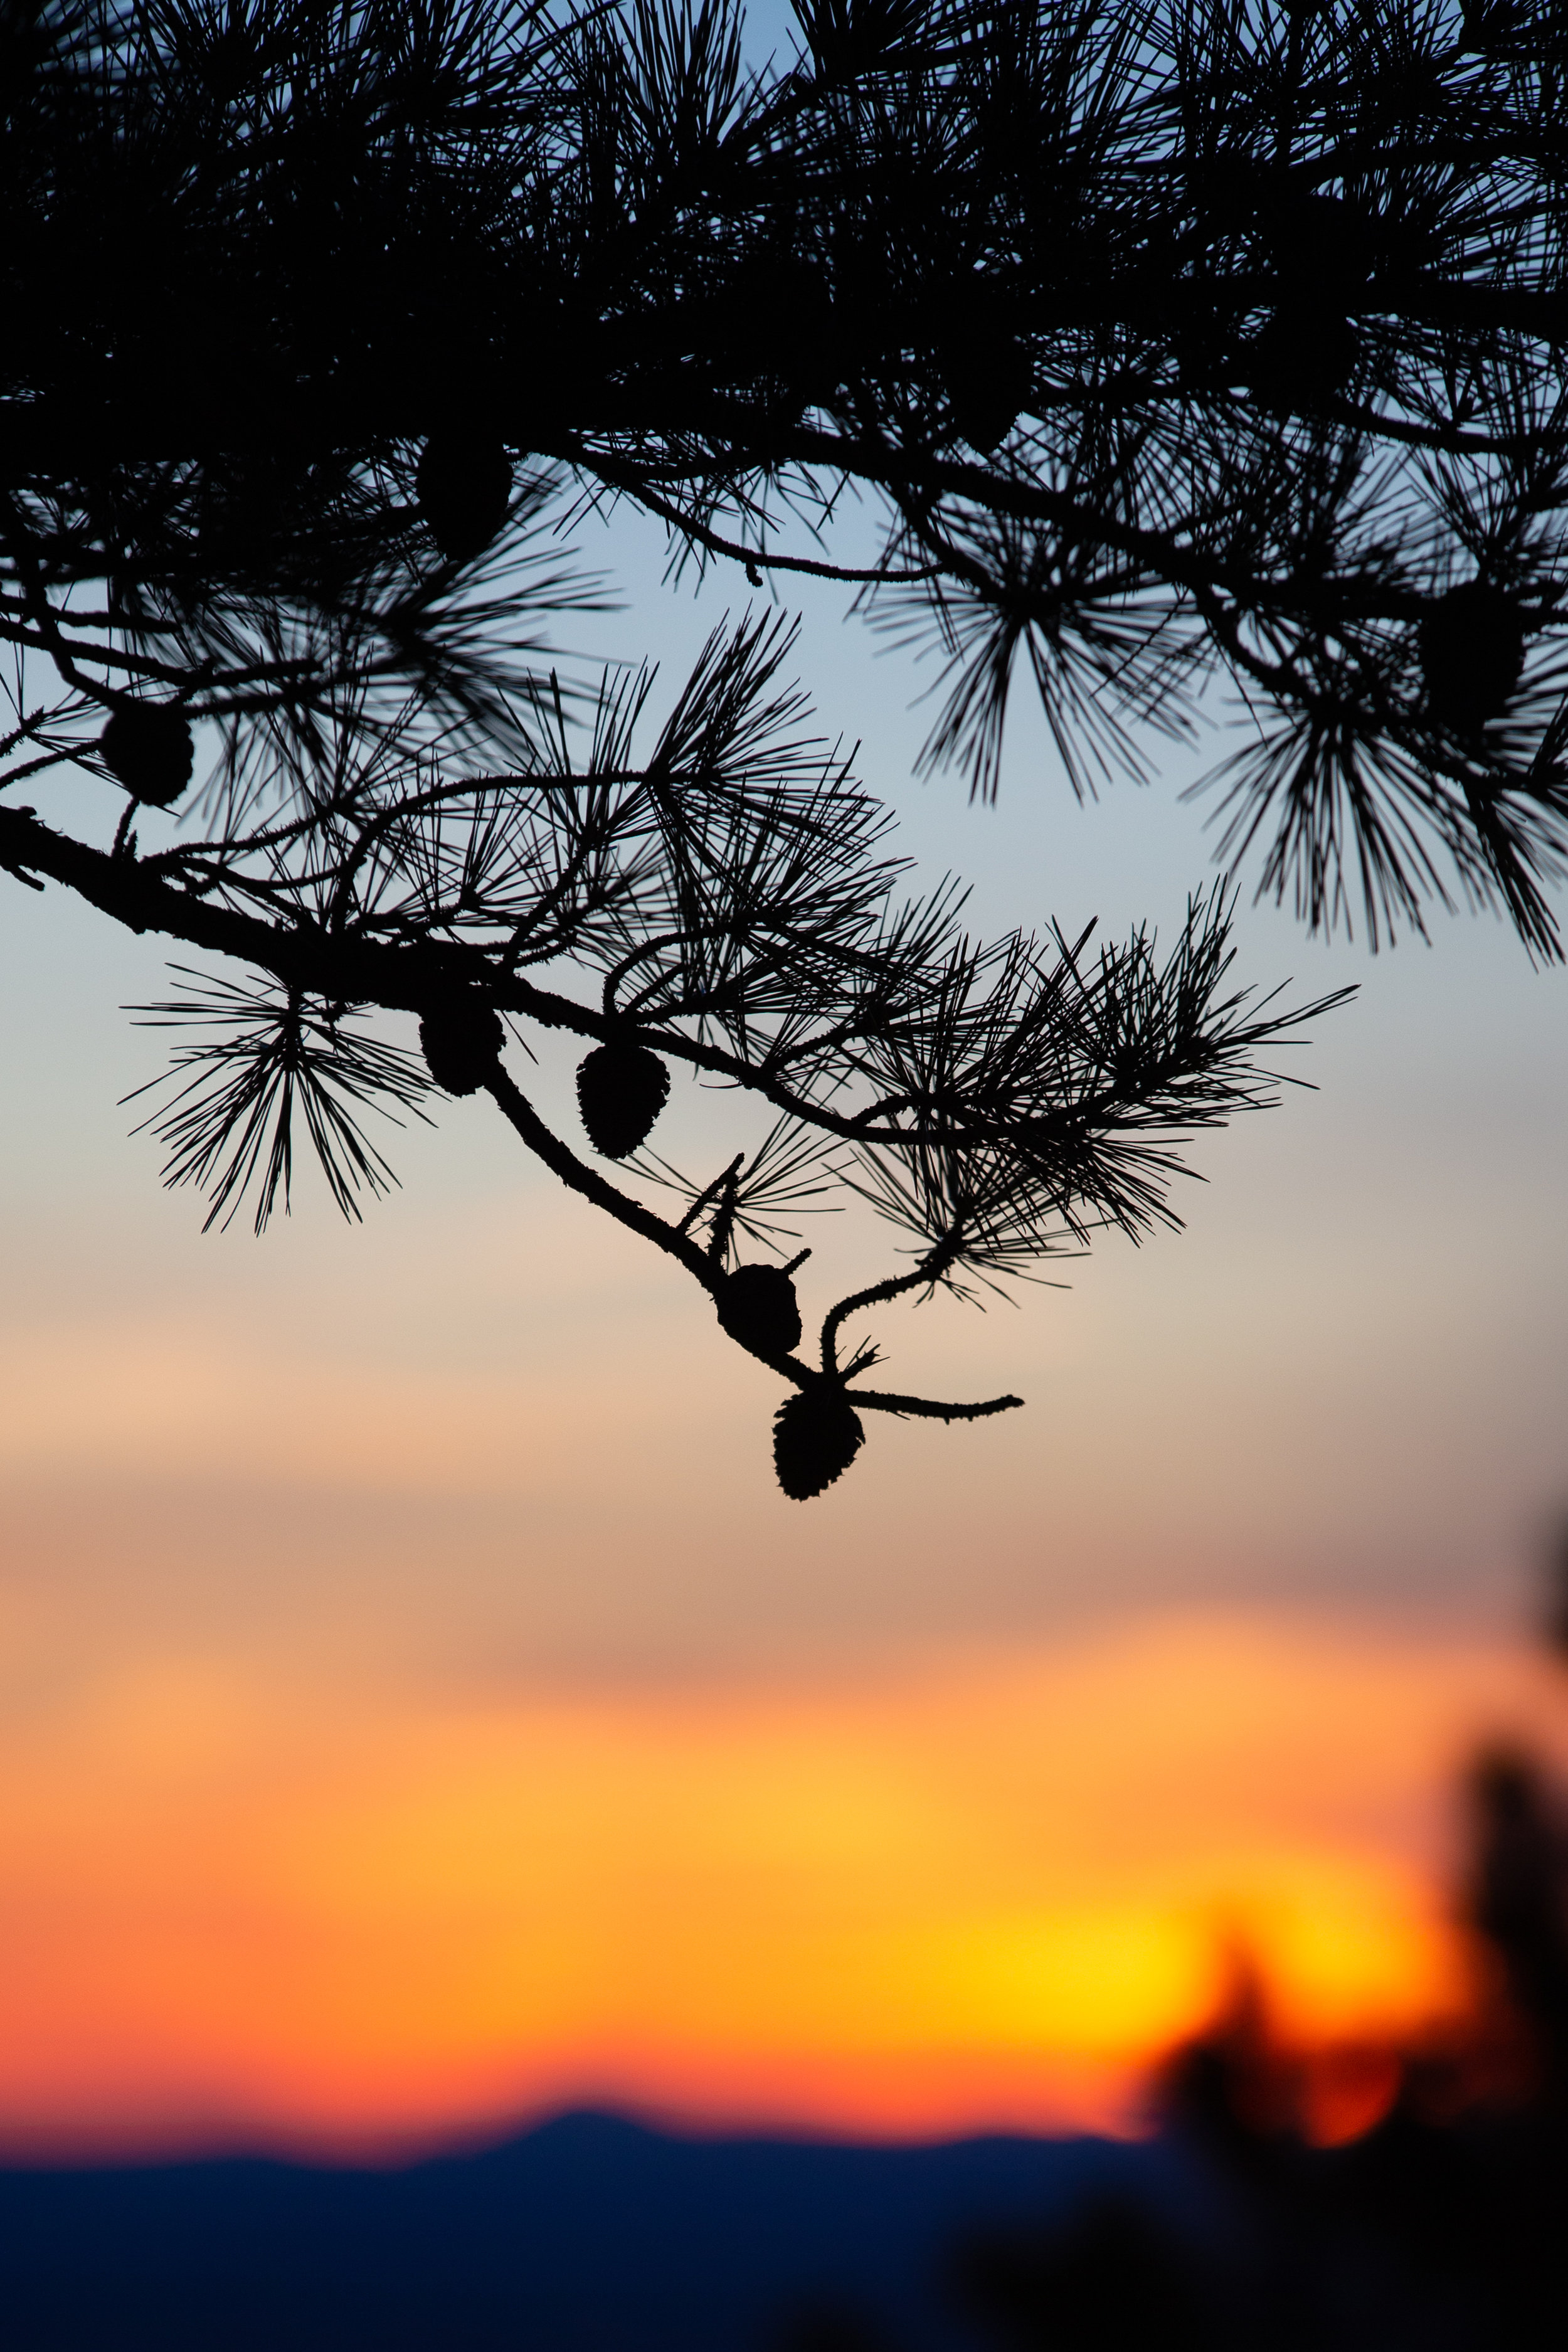 Shenandoah-National-Park-blue-ridge-parkway-day-mountains-afternoon-haze-layers-distance-texture-trees-fall-sunset-evening-silhouette-pinecone